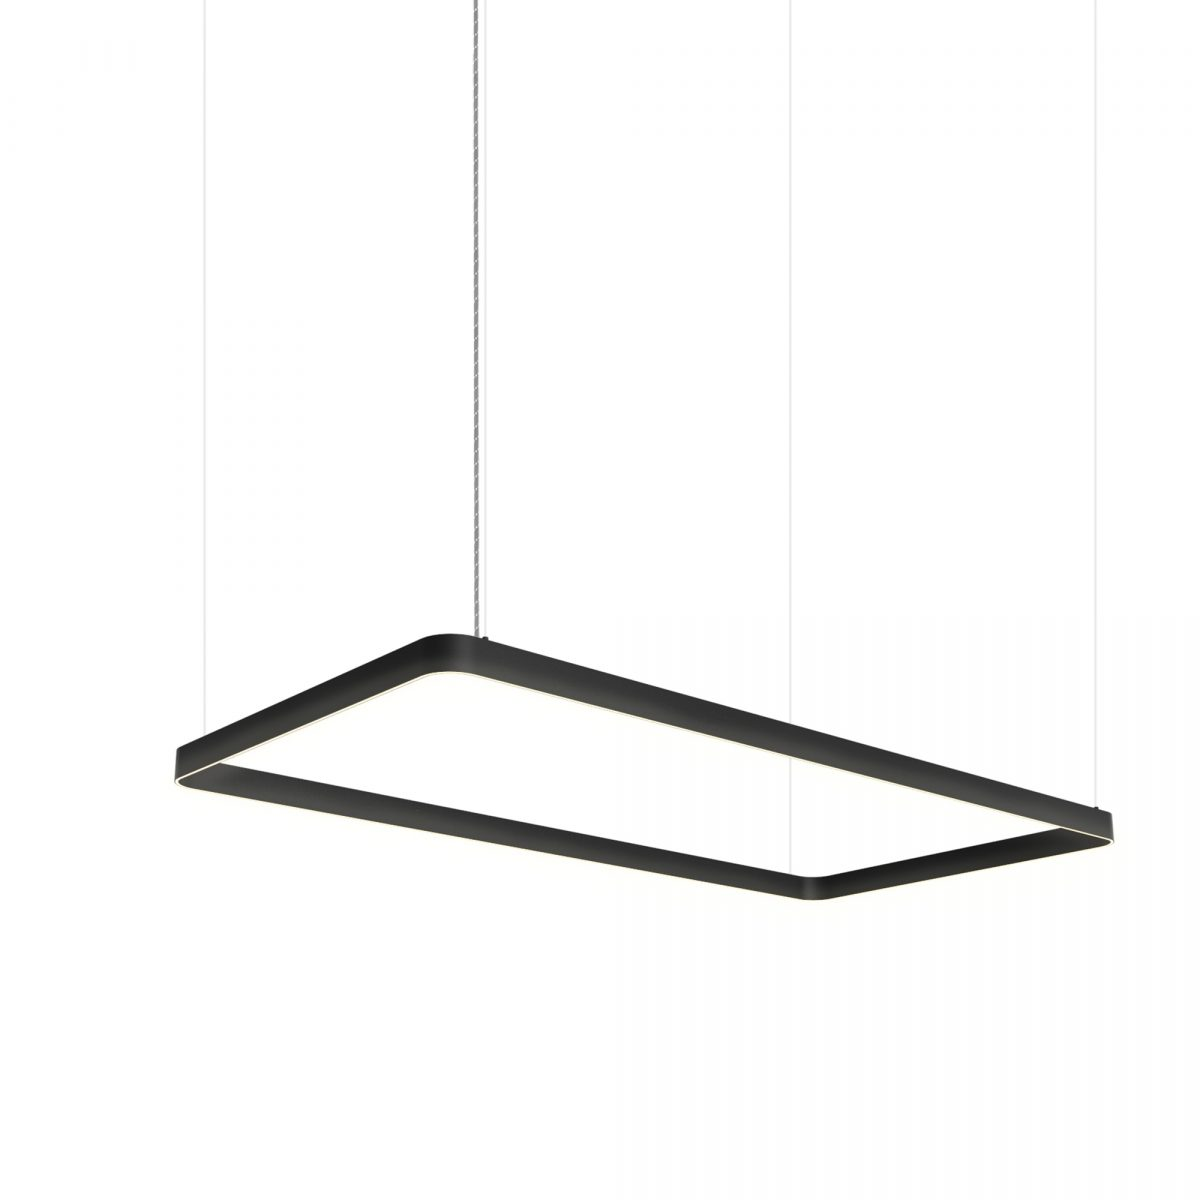 JSPR Eden 75×150 Black Rectangle